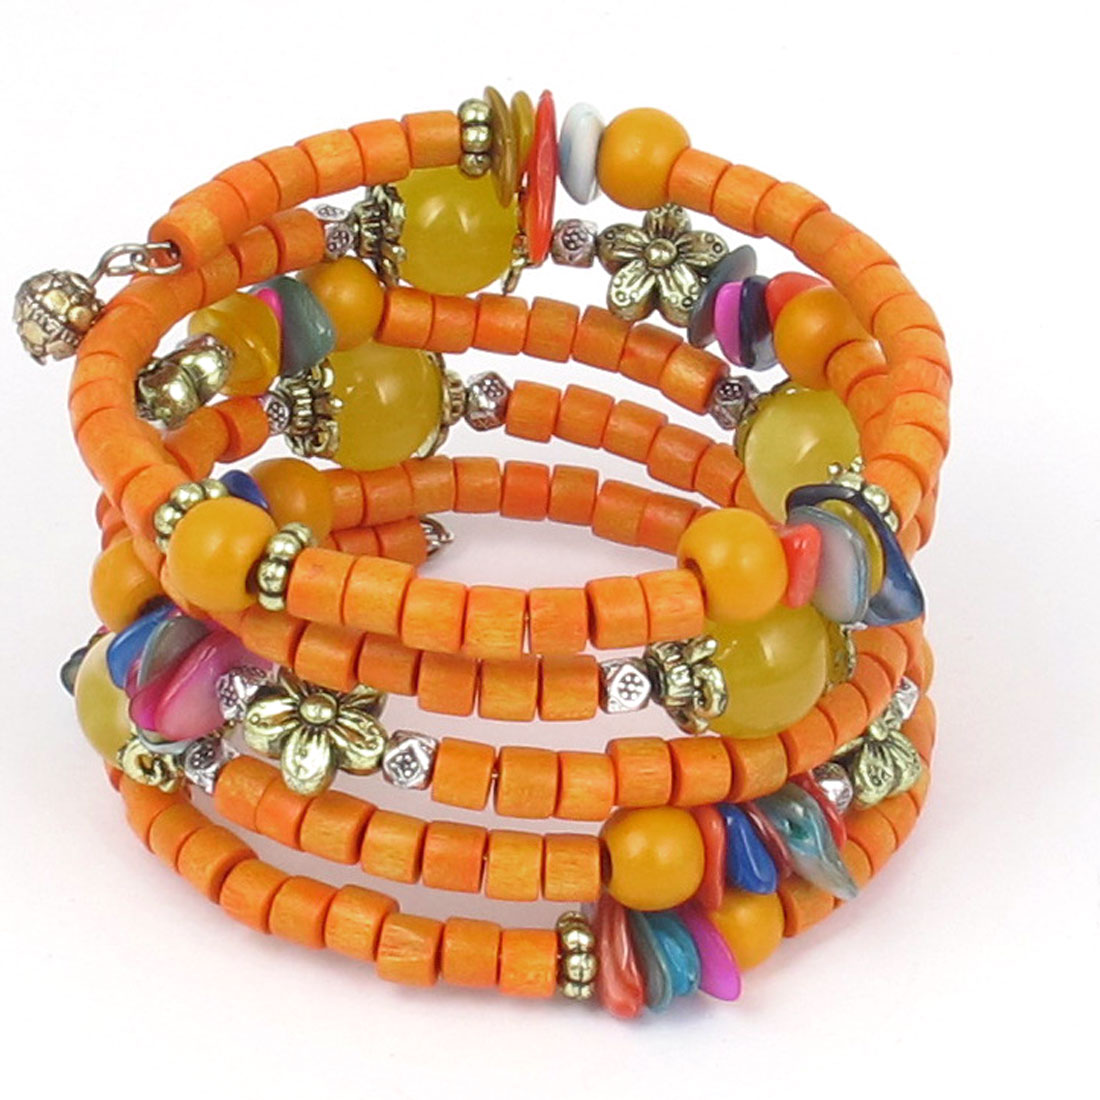 Flower Decor National Style Handmade Cylinder Wooden Beads Multi-layer Wrist Bangle Bracelet Orange